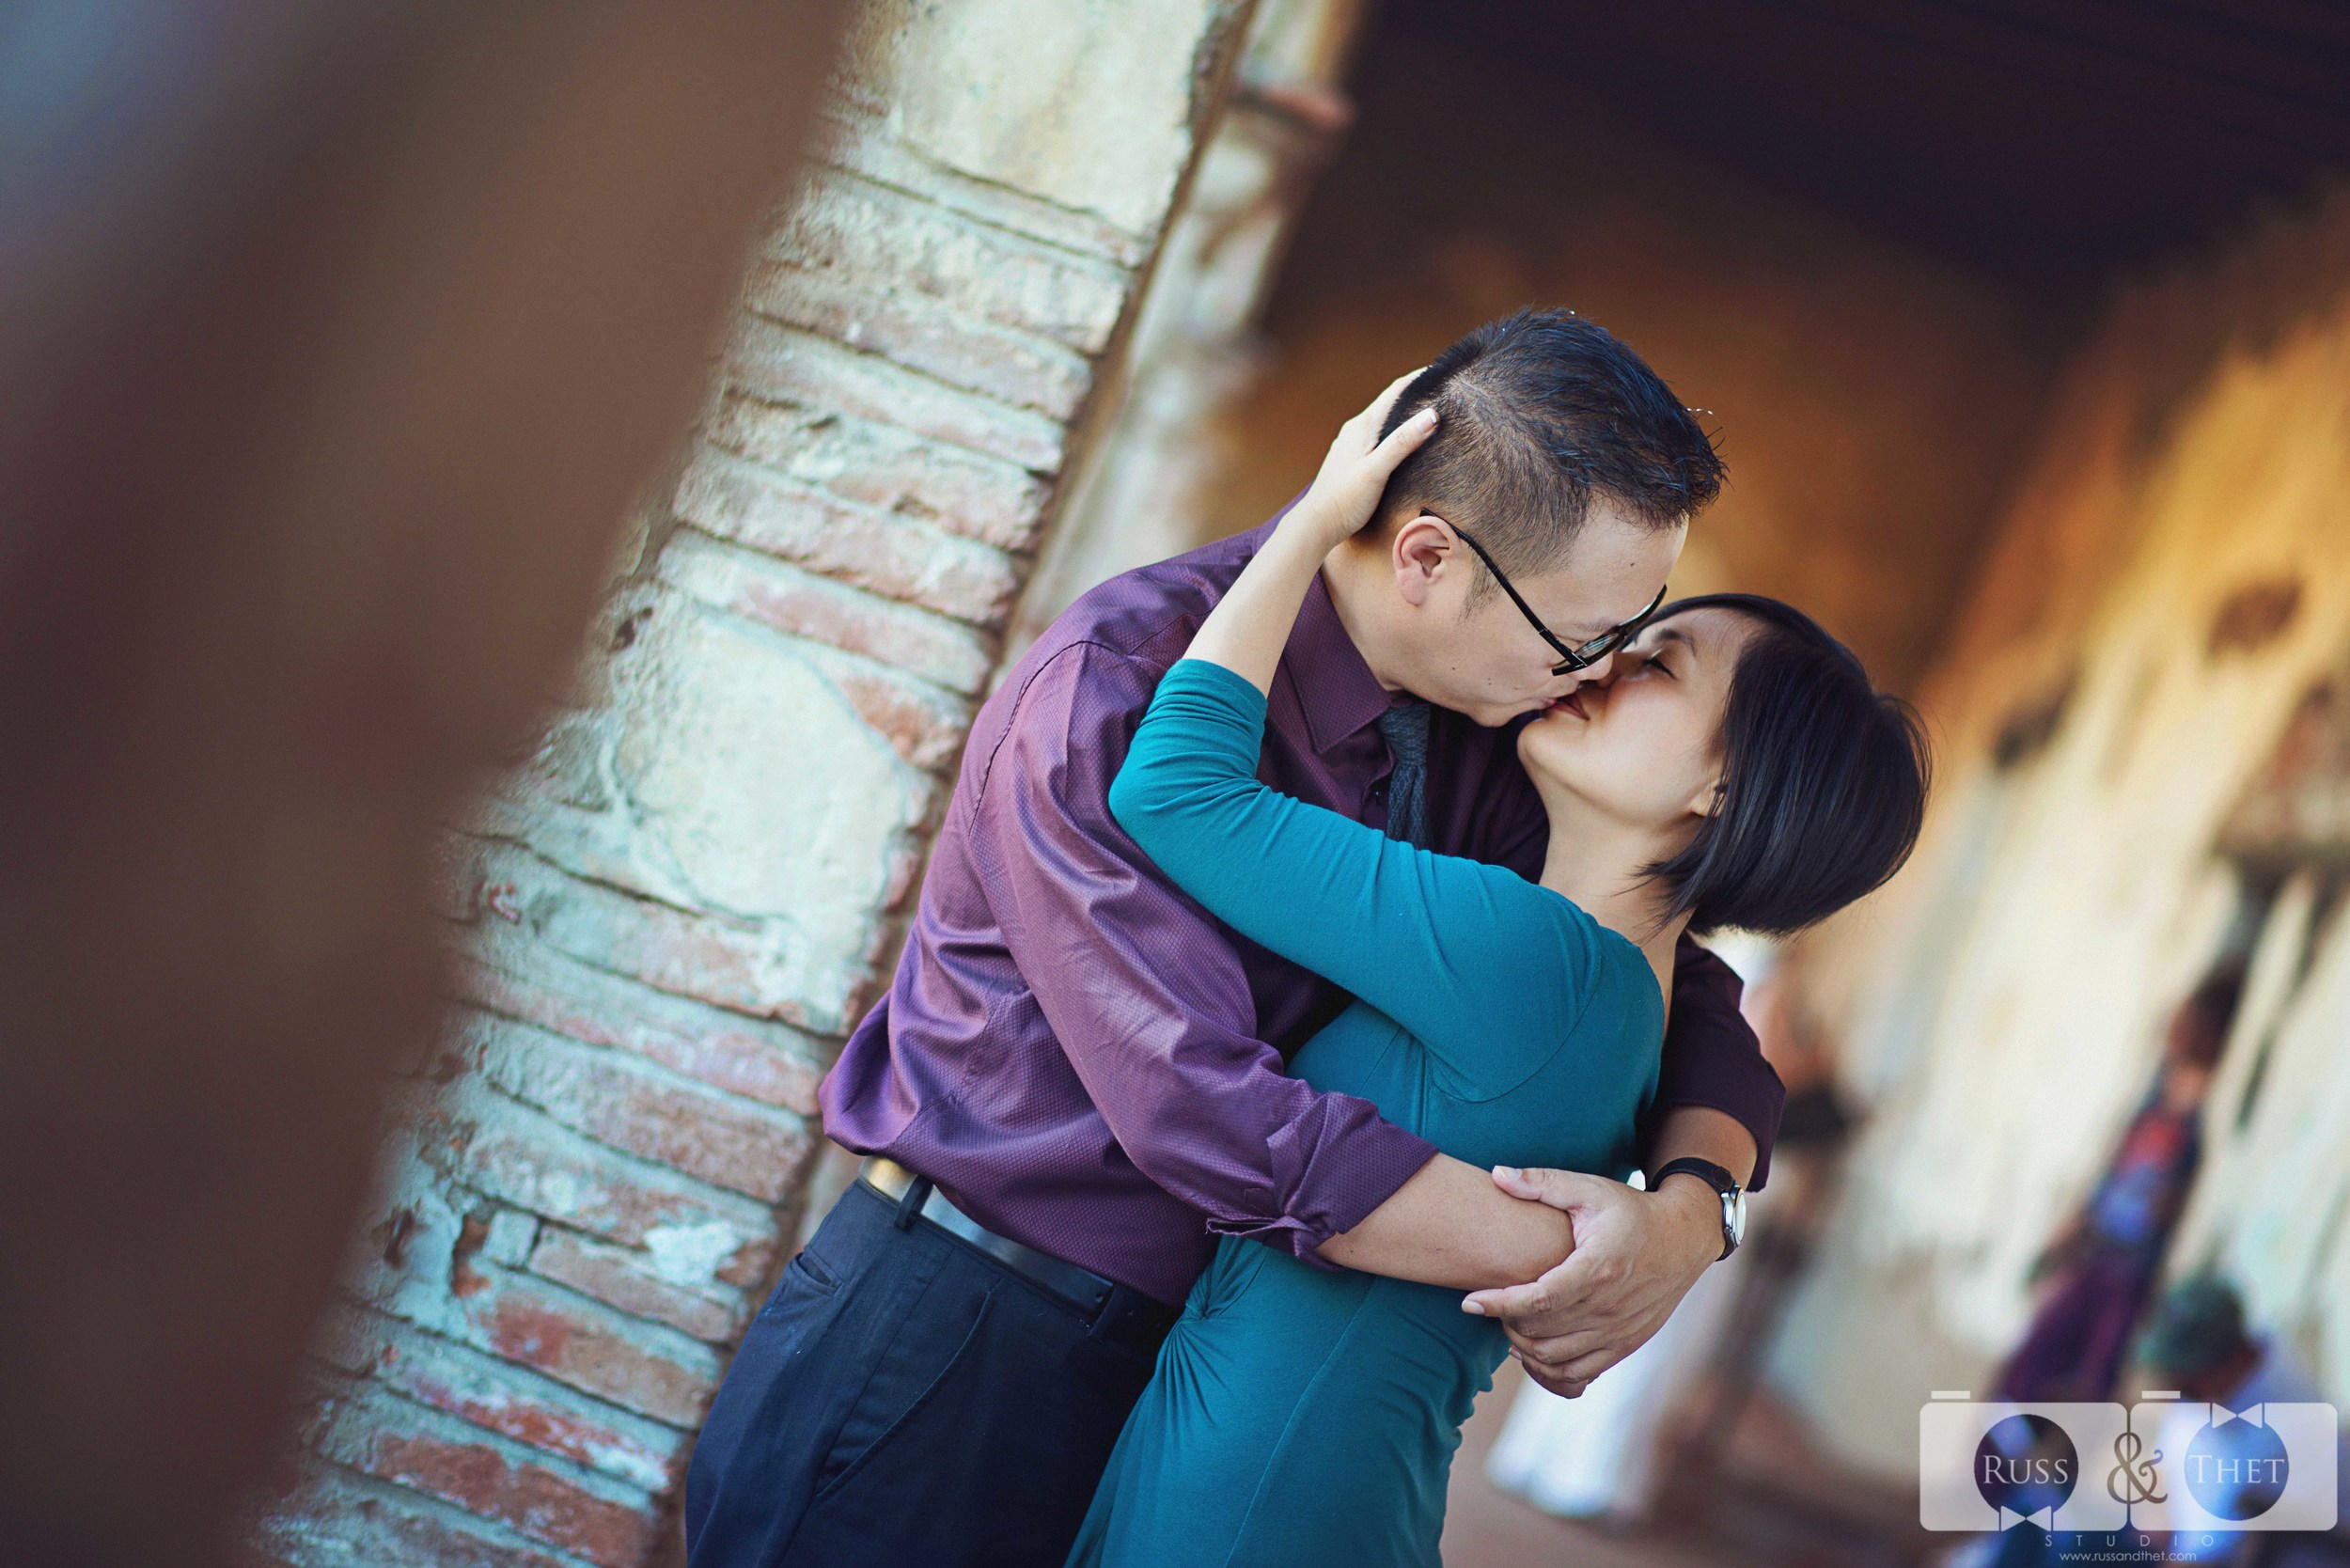 Mission-san-juan-capistrano-engagement-session-24.JPG